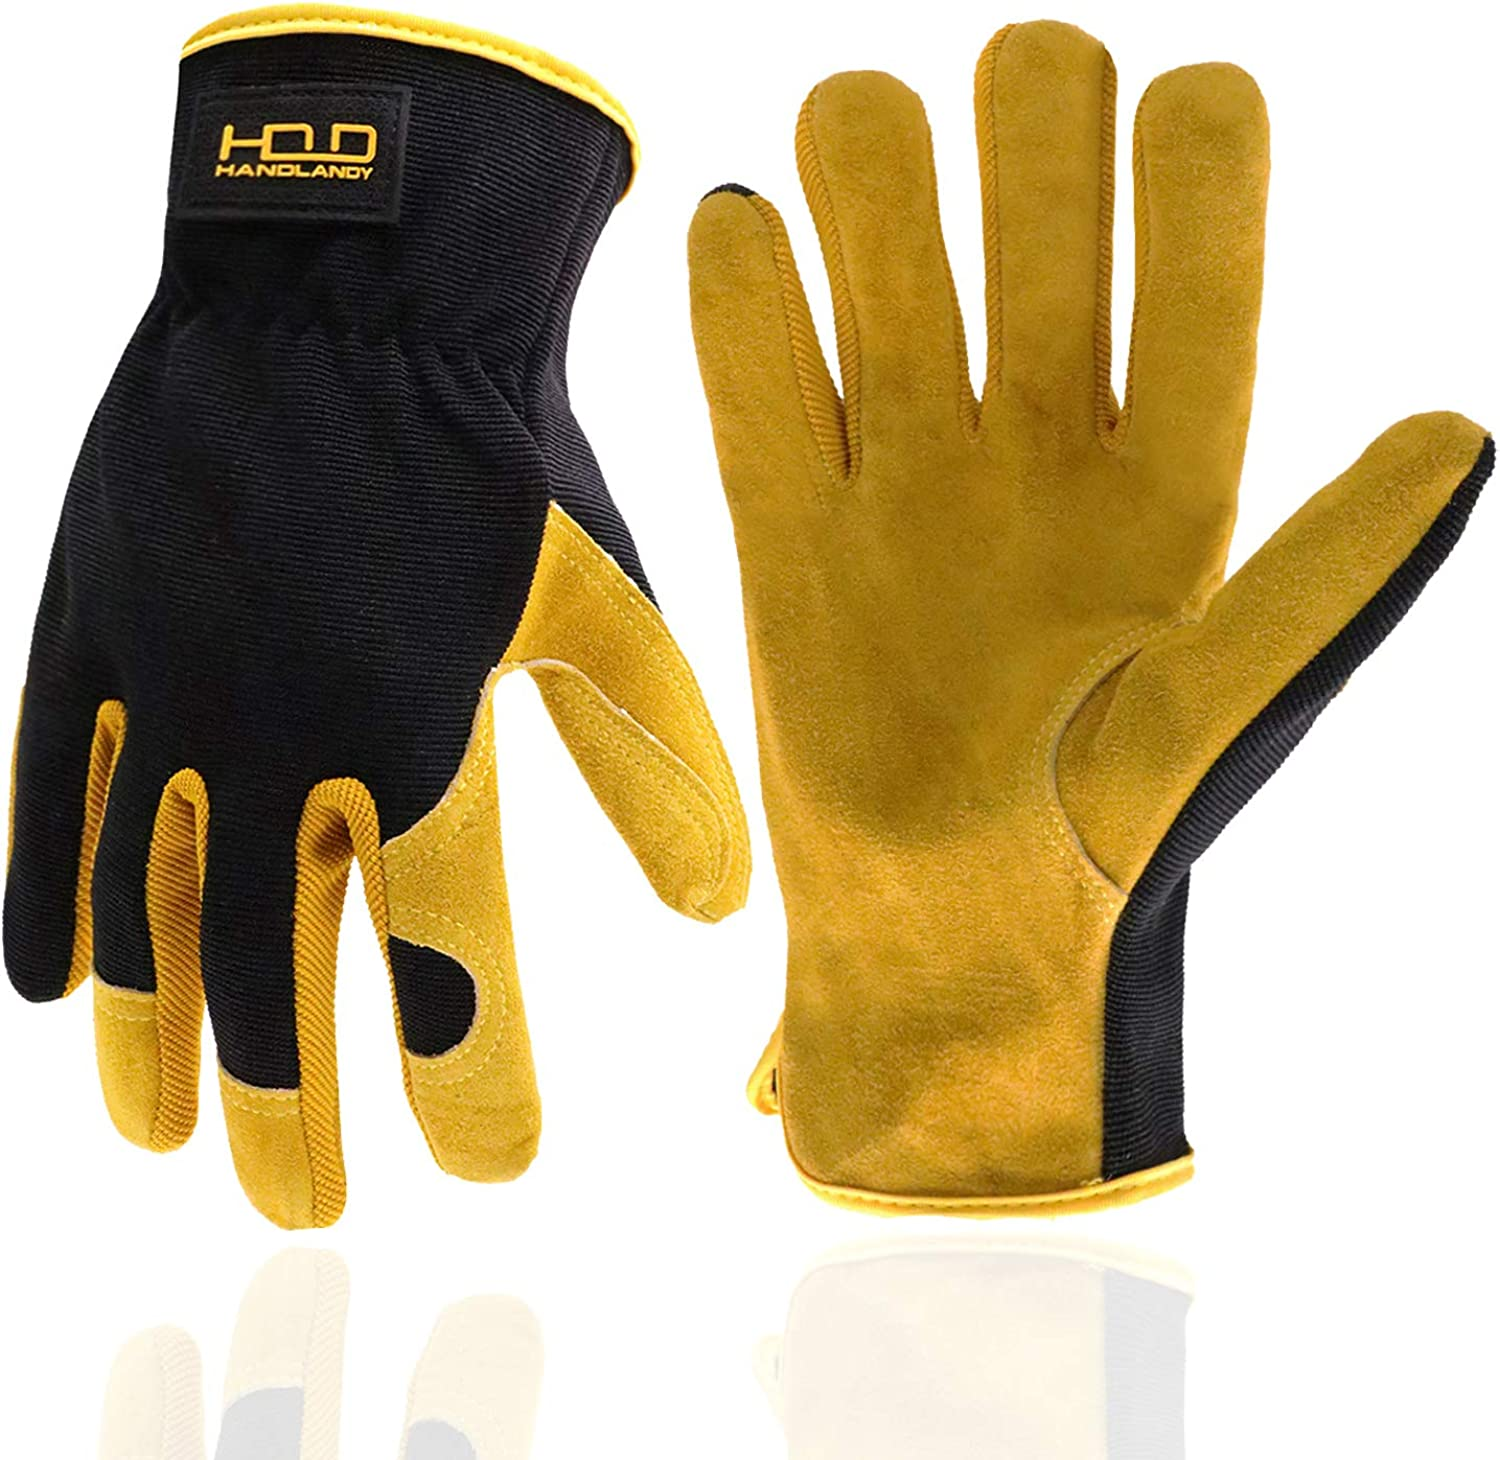 Men Women Leather Gardening Gloves, Utility Work Gloves for Mechanics, Construction, Driver, Dexterity Breathable Design